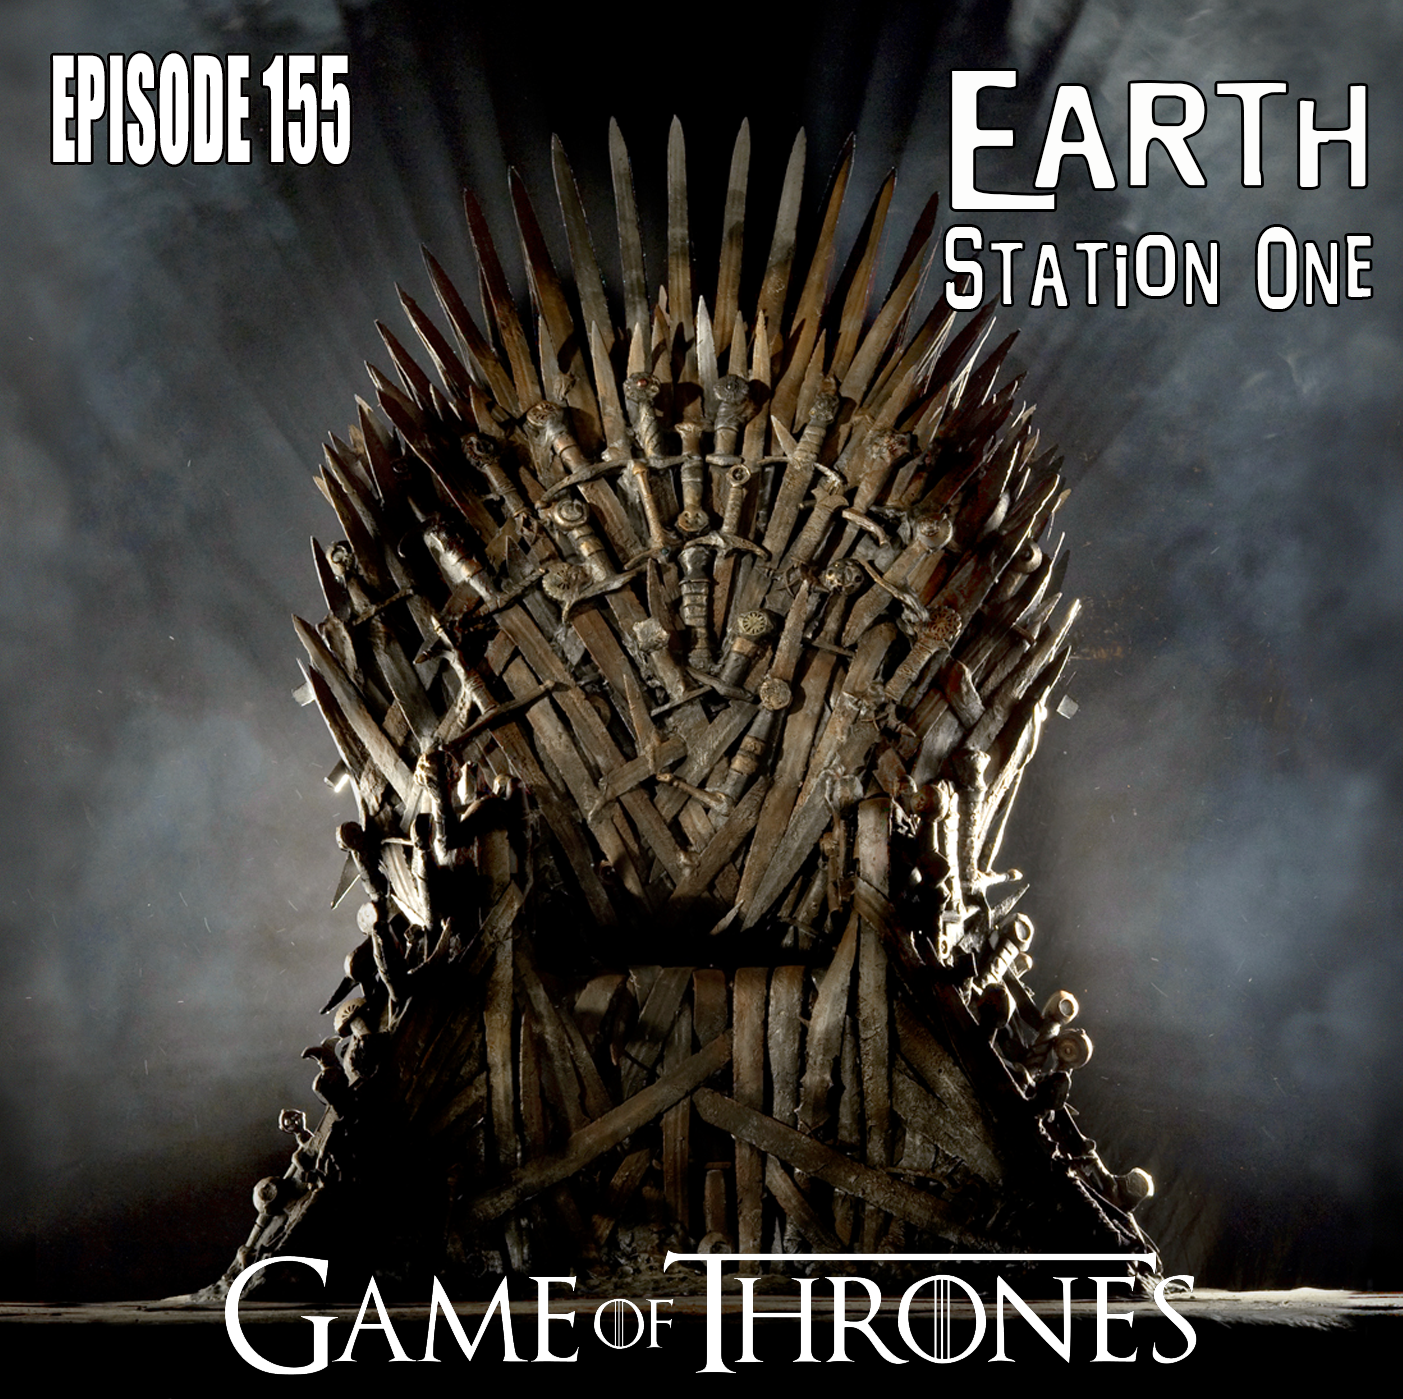 Earth Staton One Episode 156 - A Game of Thrones